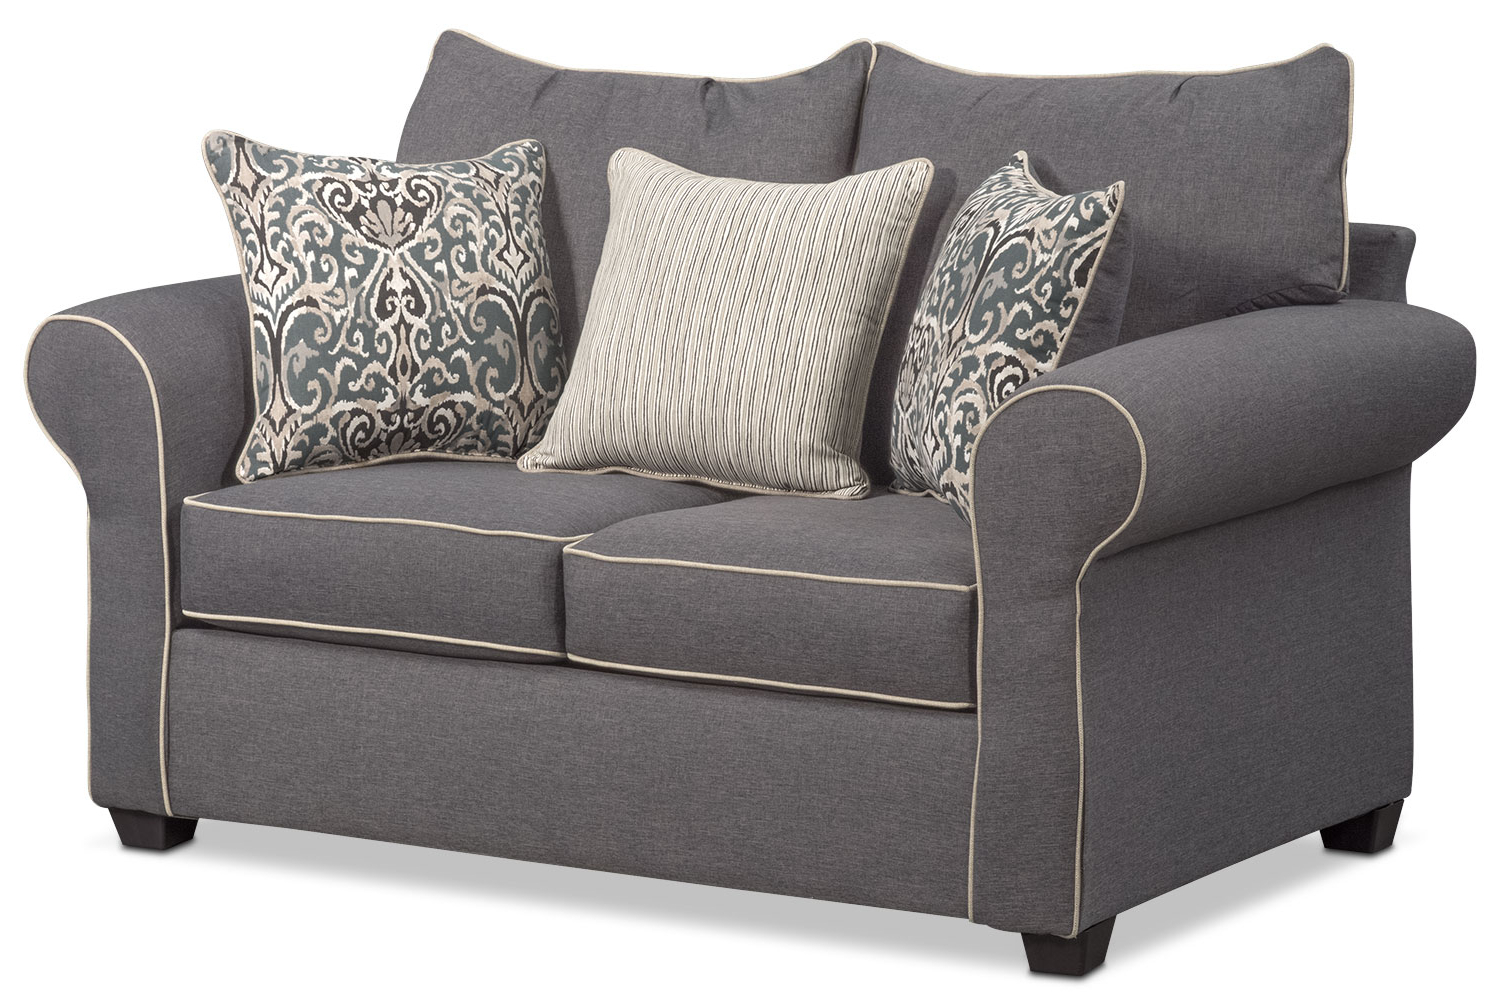 Sofa Loveseat And Chair Set In 2018 Carla Sofa, Loveseat, And Chair Set – Gray (View 15 of 20)